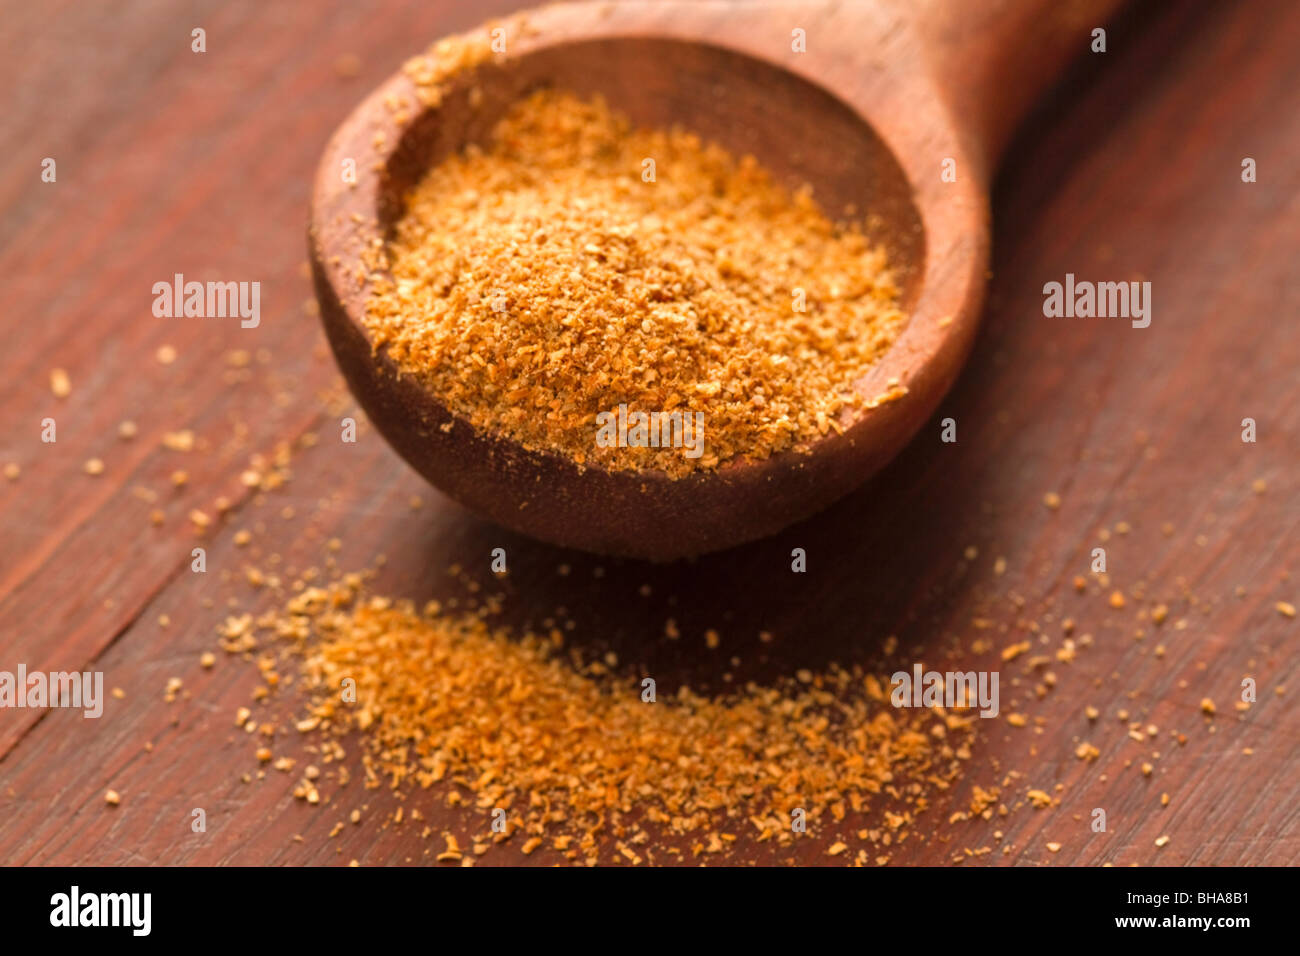 Ground cumin in a measuring spoon - Stock Image